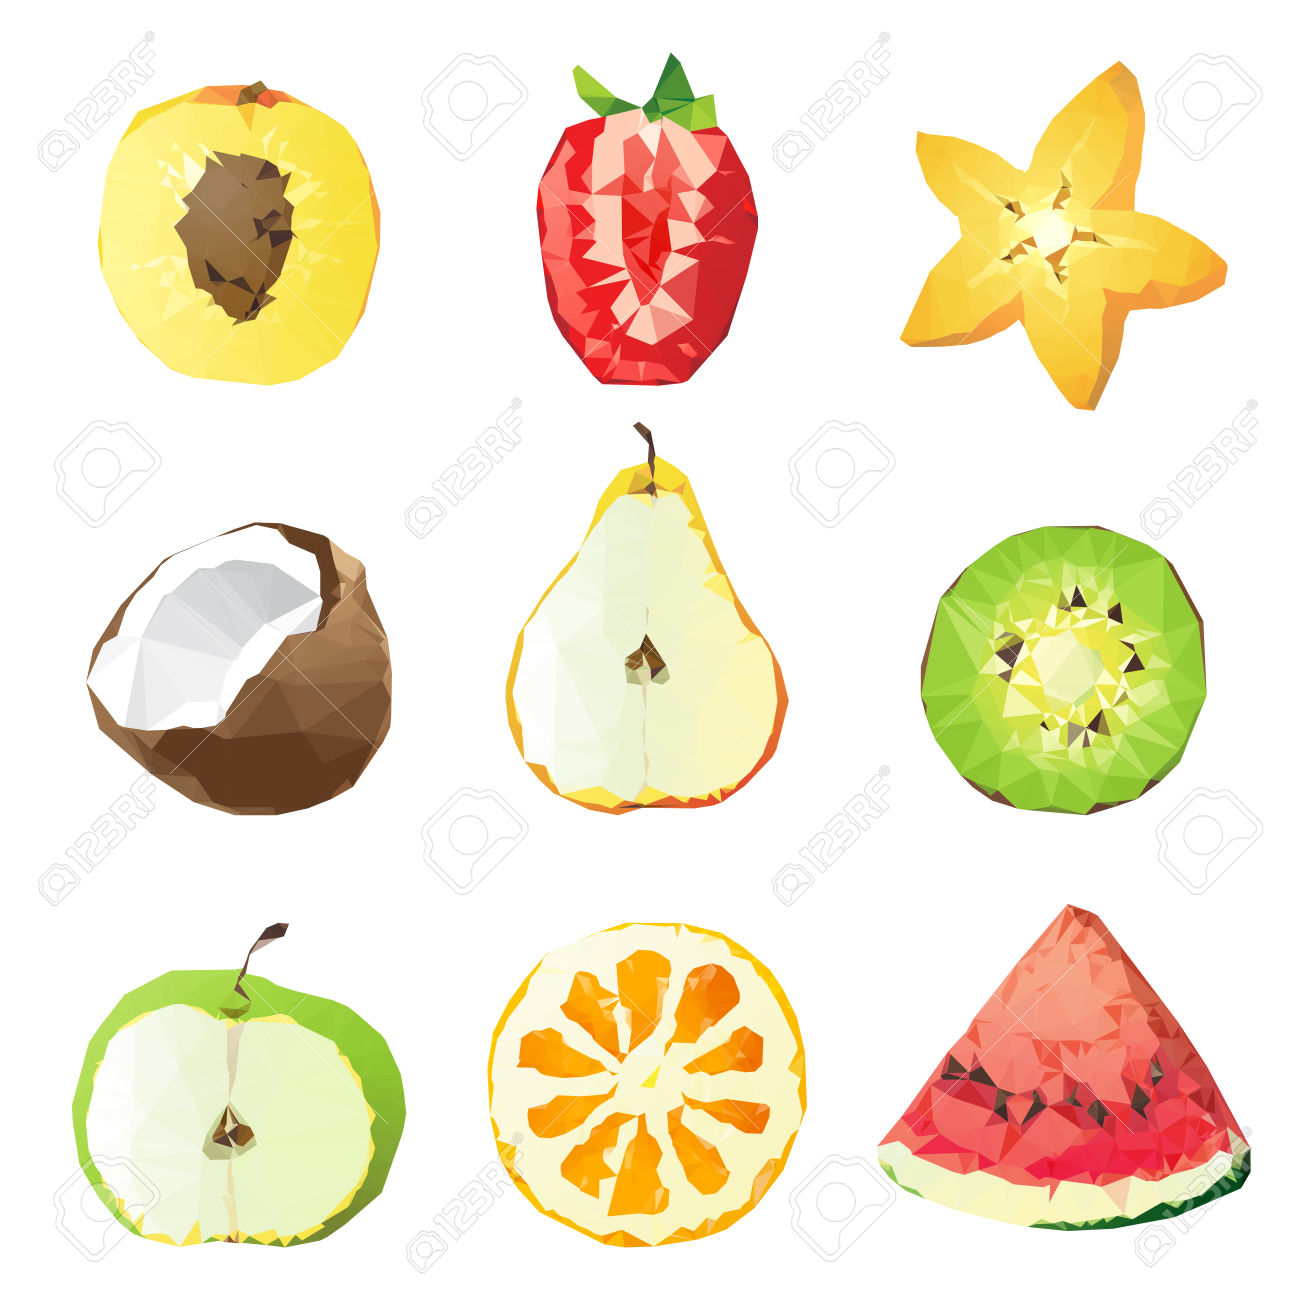 9 Fruit Pieces In Lowpoly Style Over White Background Royalty Free.